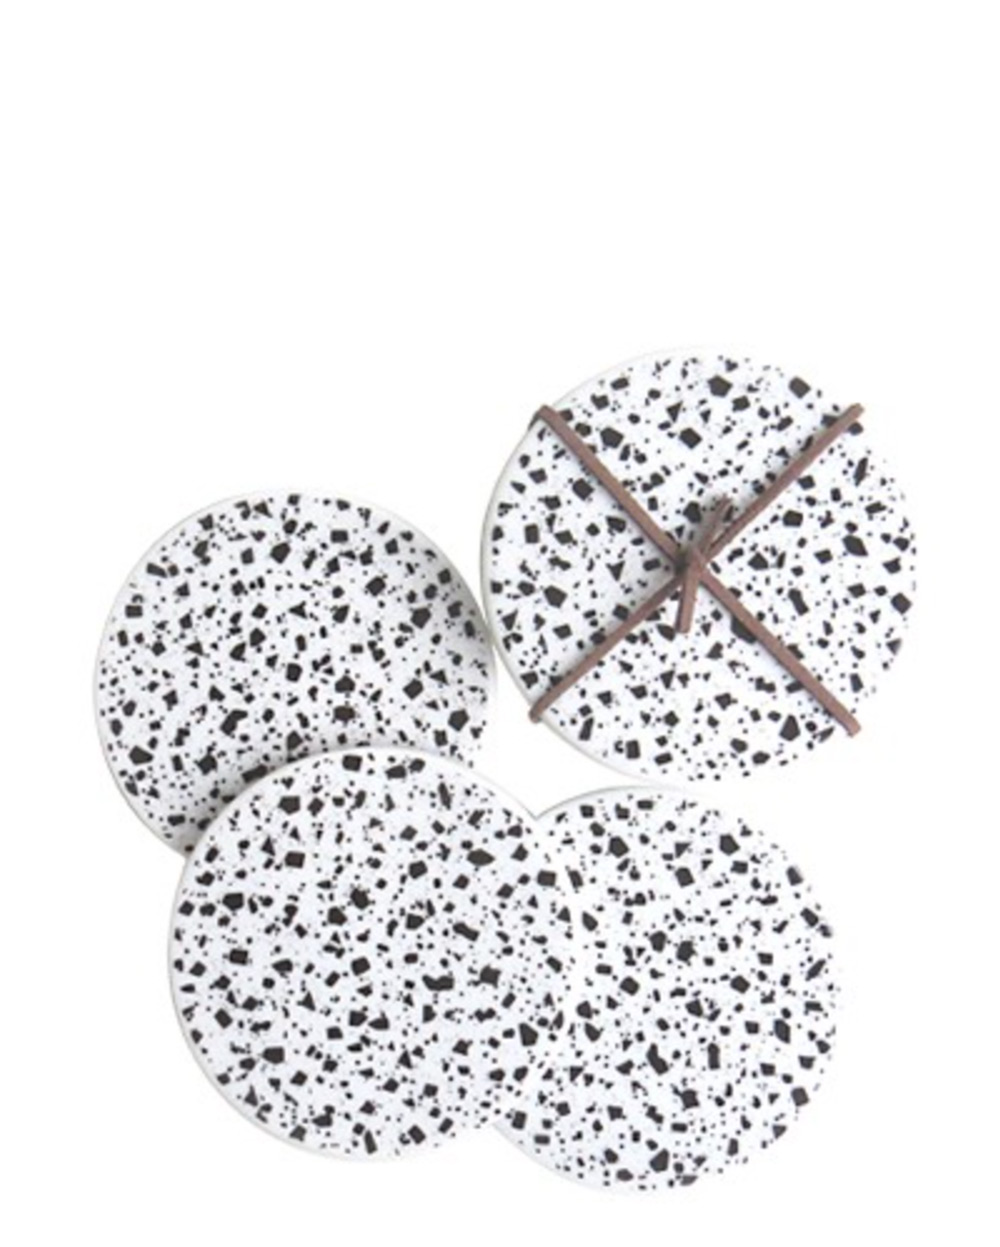 Black and White Terrazzo Coasters – The Littlest Fry